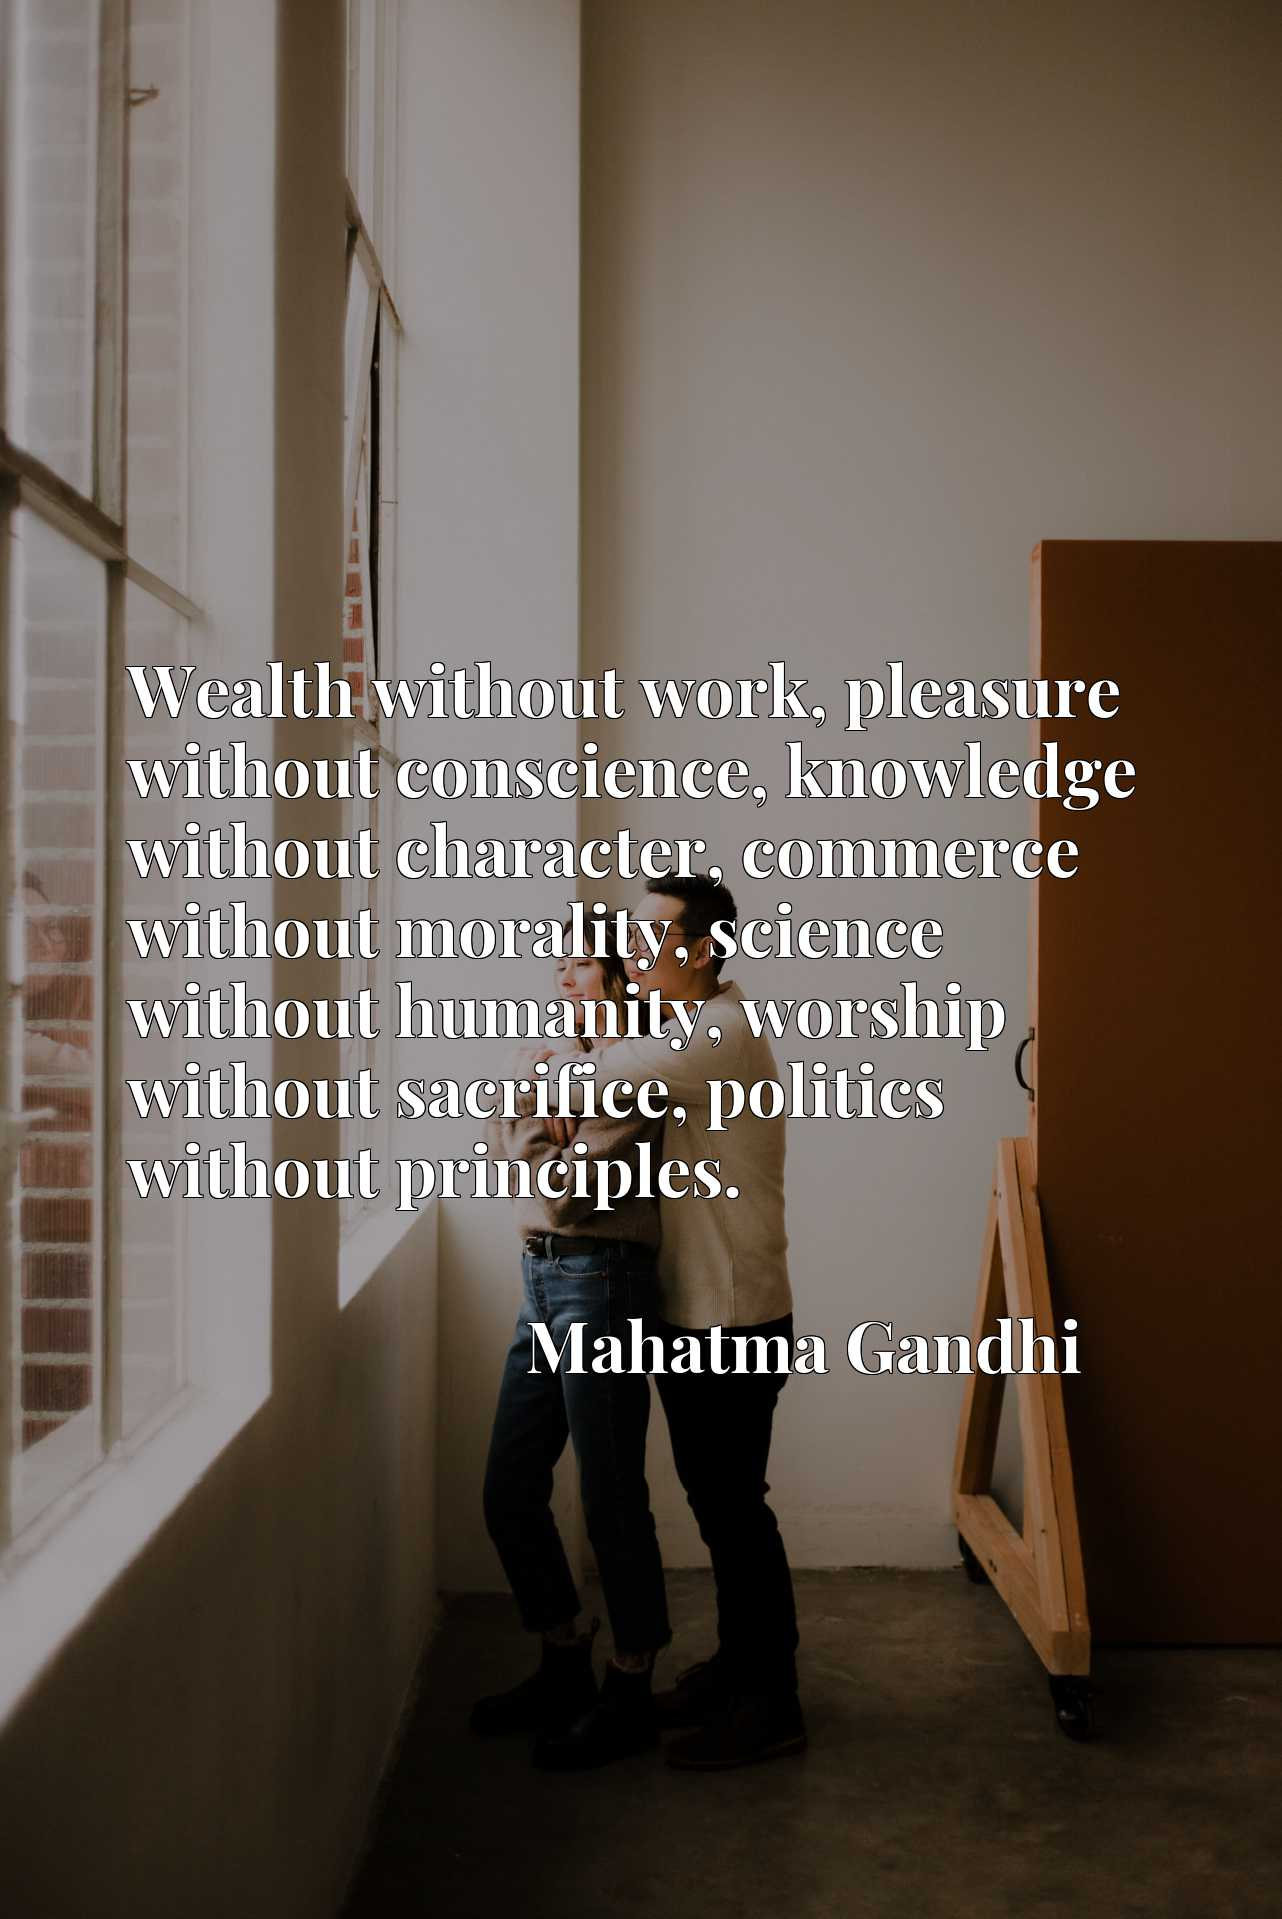 Wealth without work, pleasure without conscience, knowledge without character, commerce without morality, science without humanity, worship without sacrifice, politics without principles.